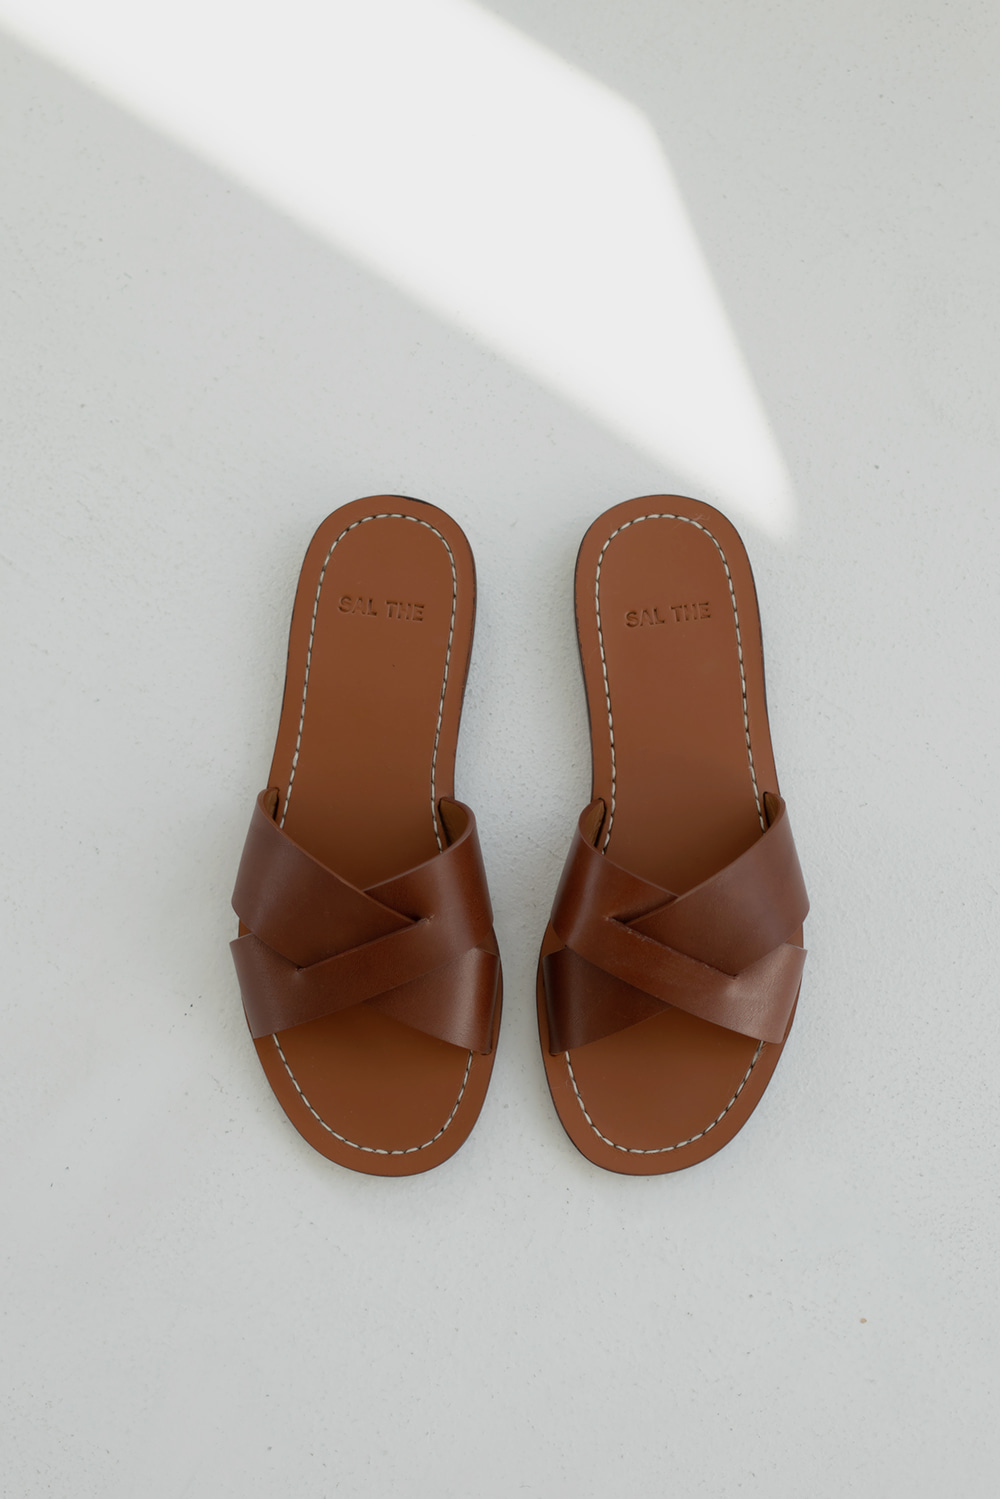 5535_SAL Strap Leather Slides